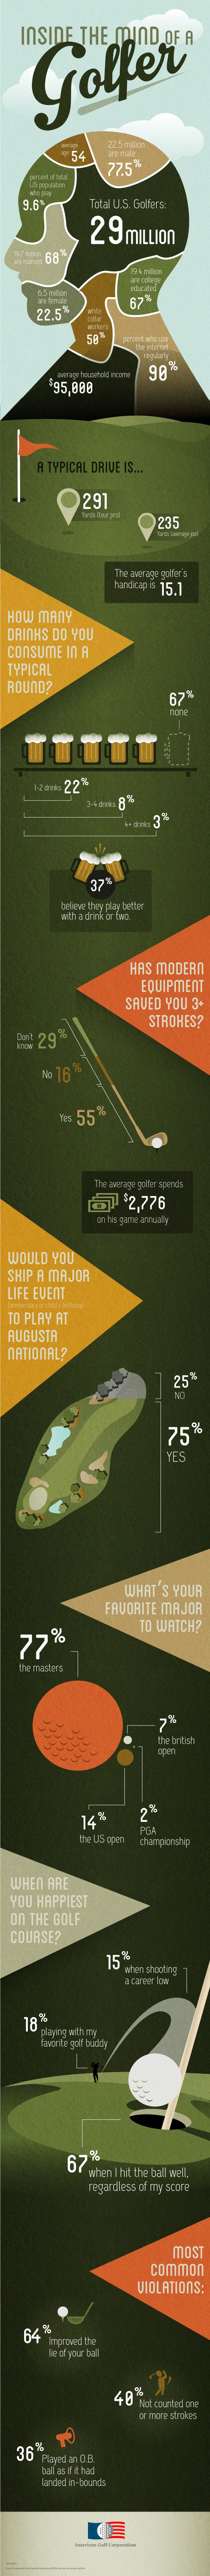 The Demographics of Golf – Inside the Mind of a Golfer